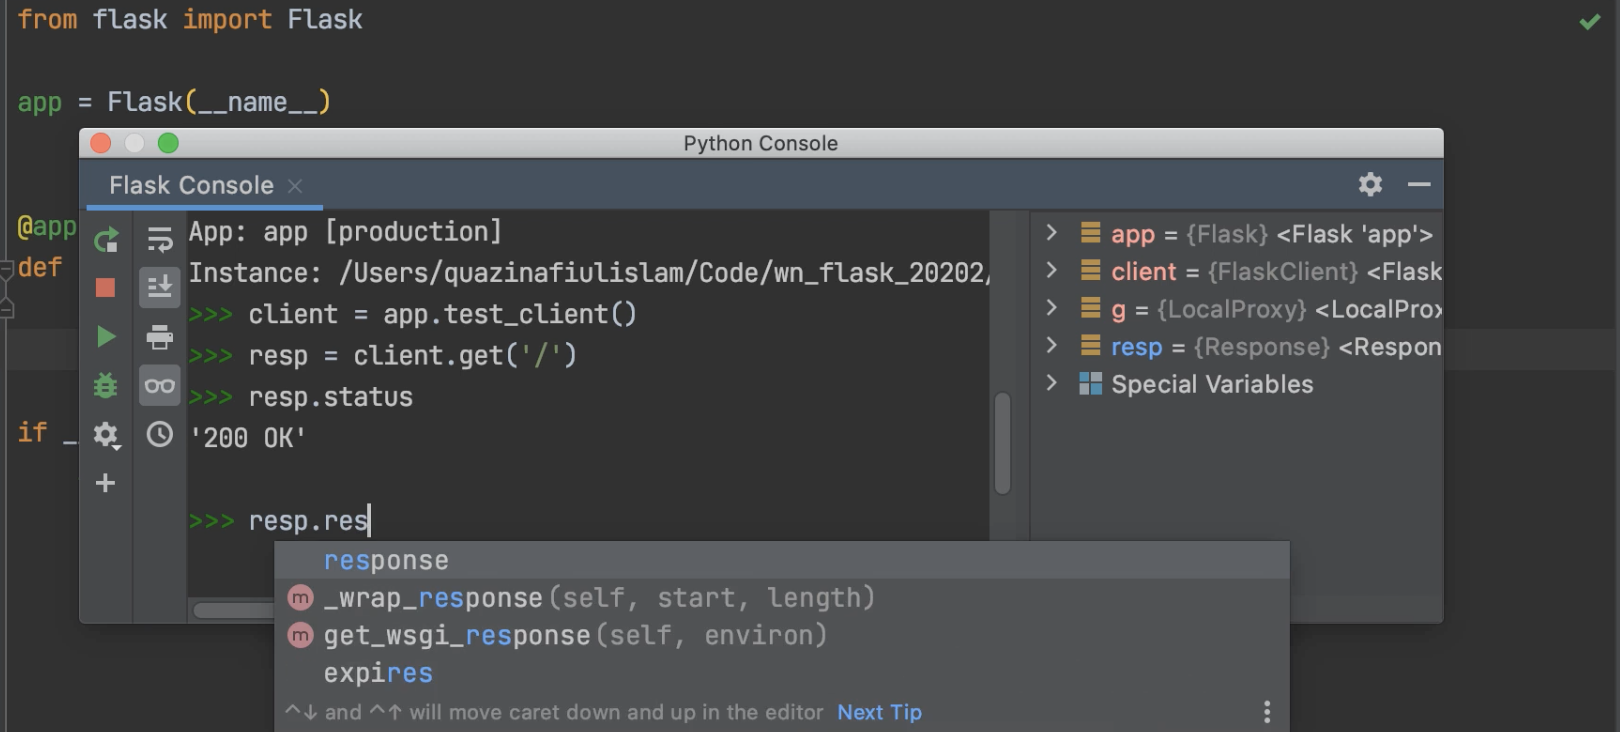 Python console becomes a Flask shell when Flask is enabled